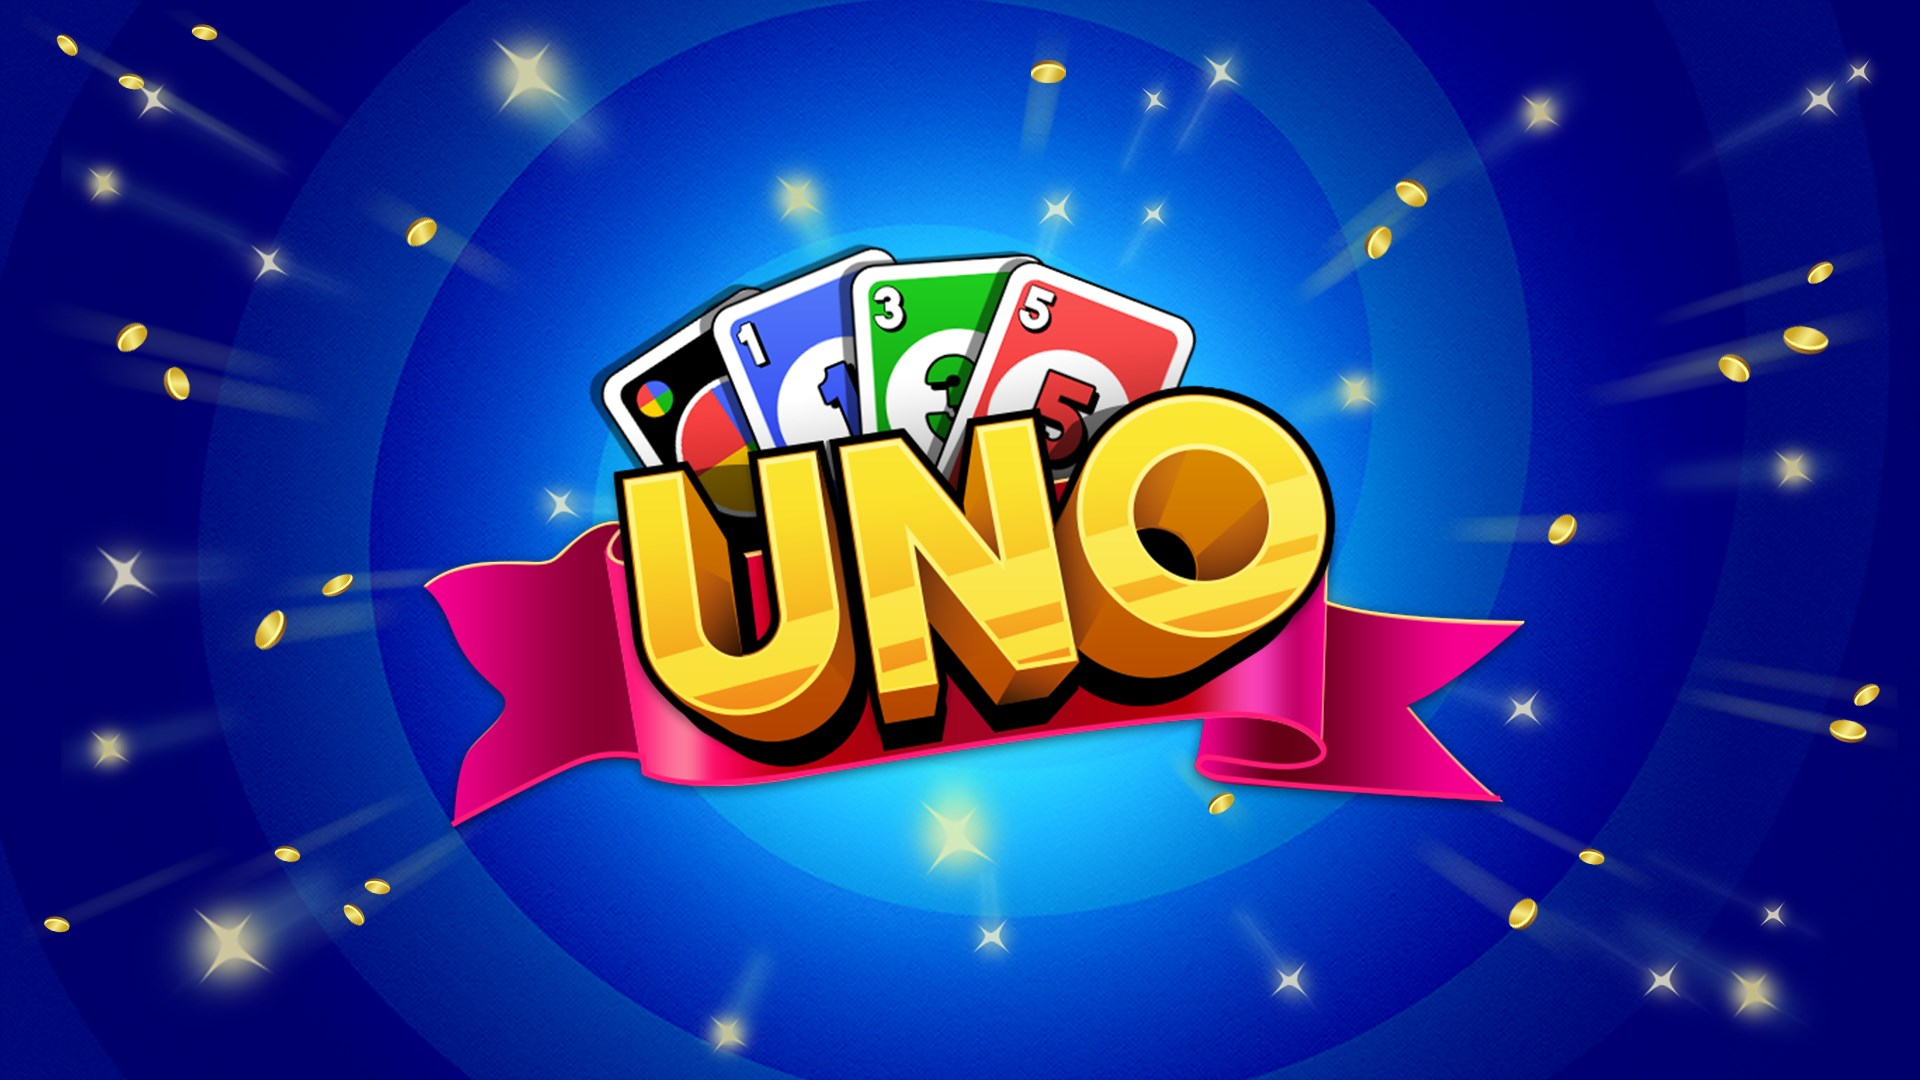 Uno™ & friends mobile game trailer youtube.